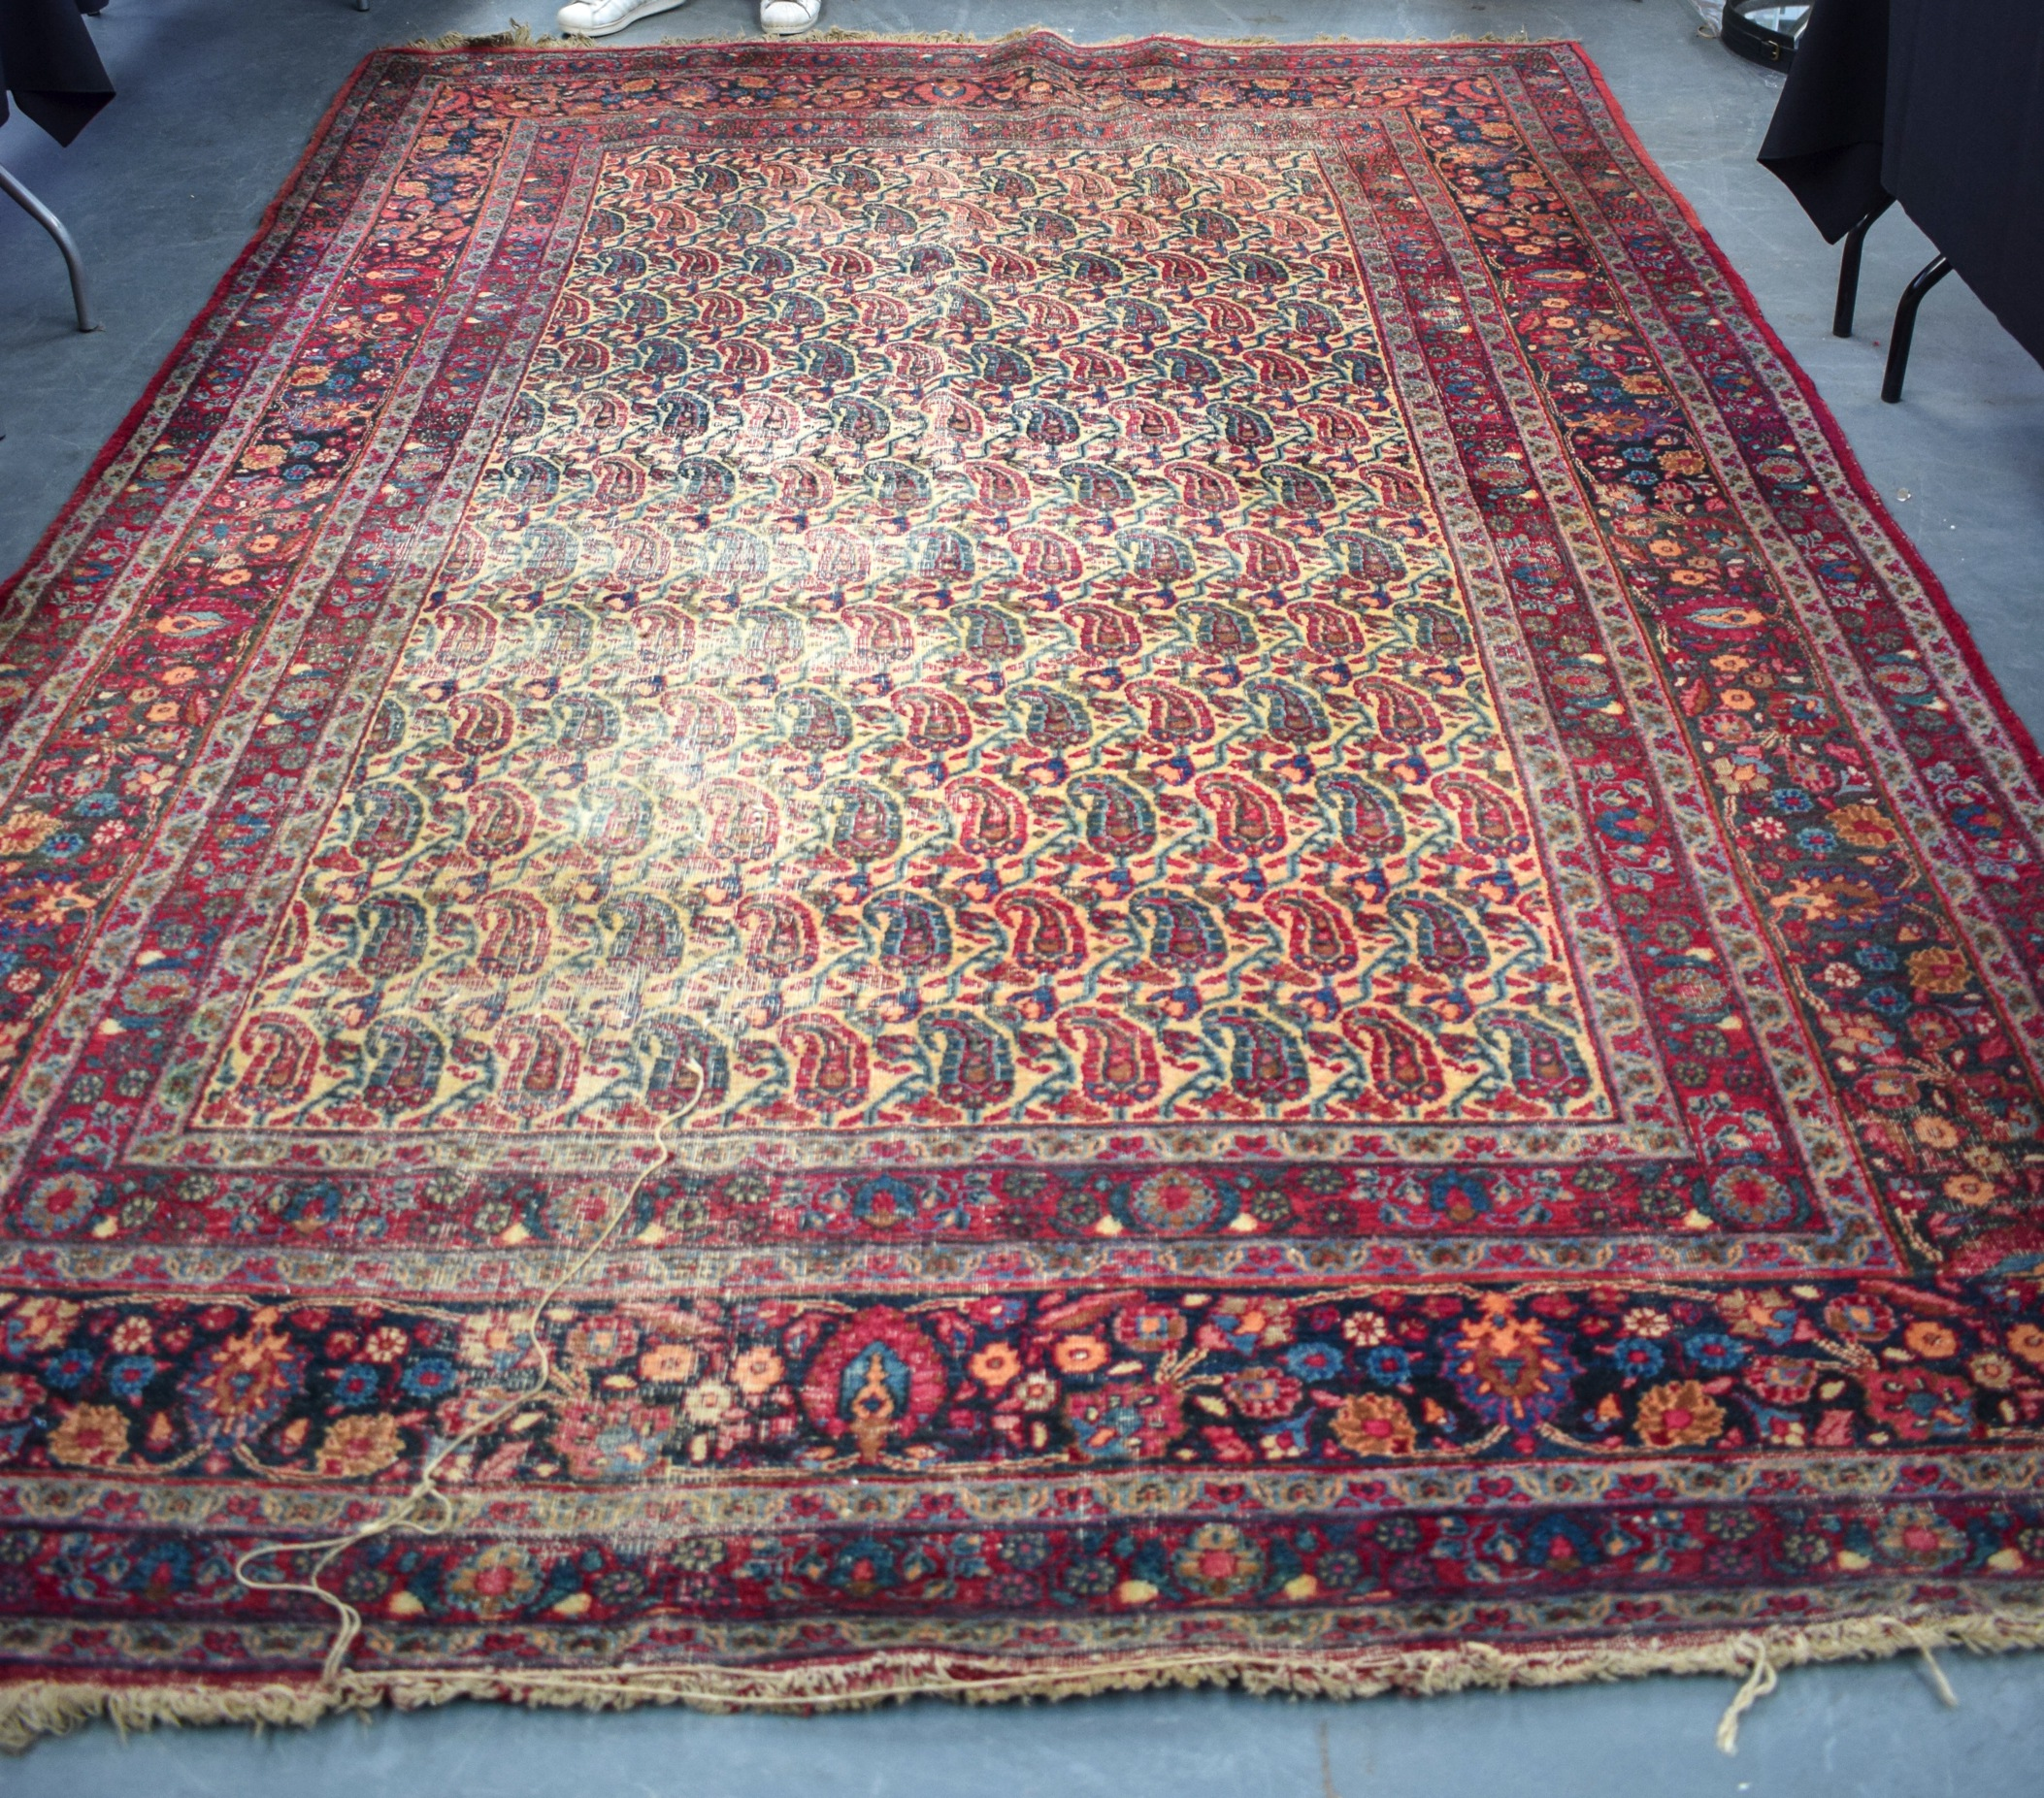 Lot 2481 - AN ANTIQUE EARLY 20TH CENTURY PERSIAN BOTEH RUG, decorated with extensive foliage. 340 cm x 222 cm.